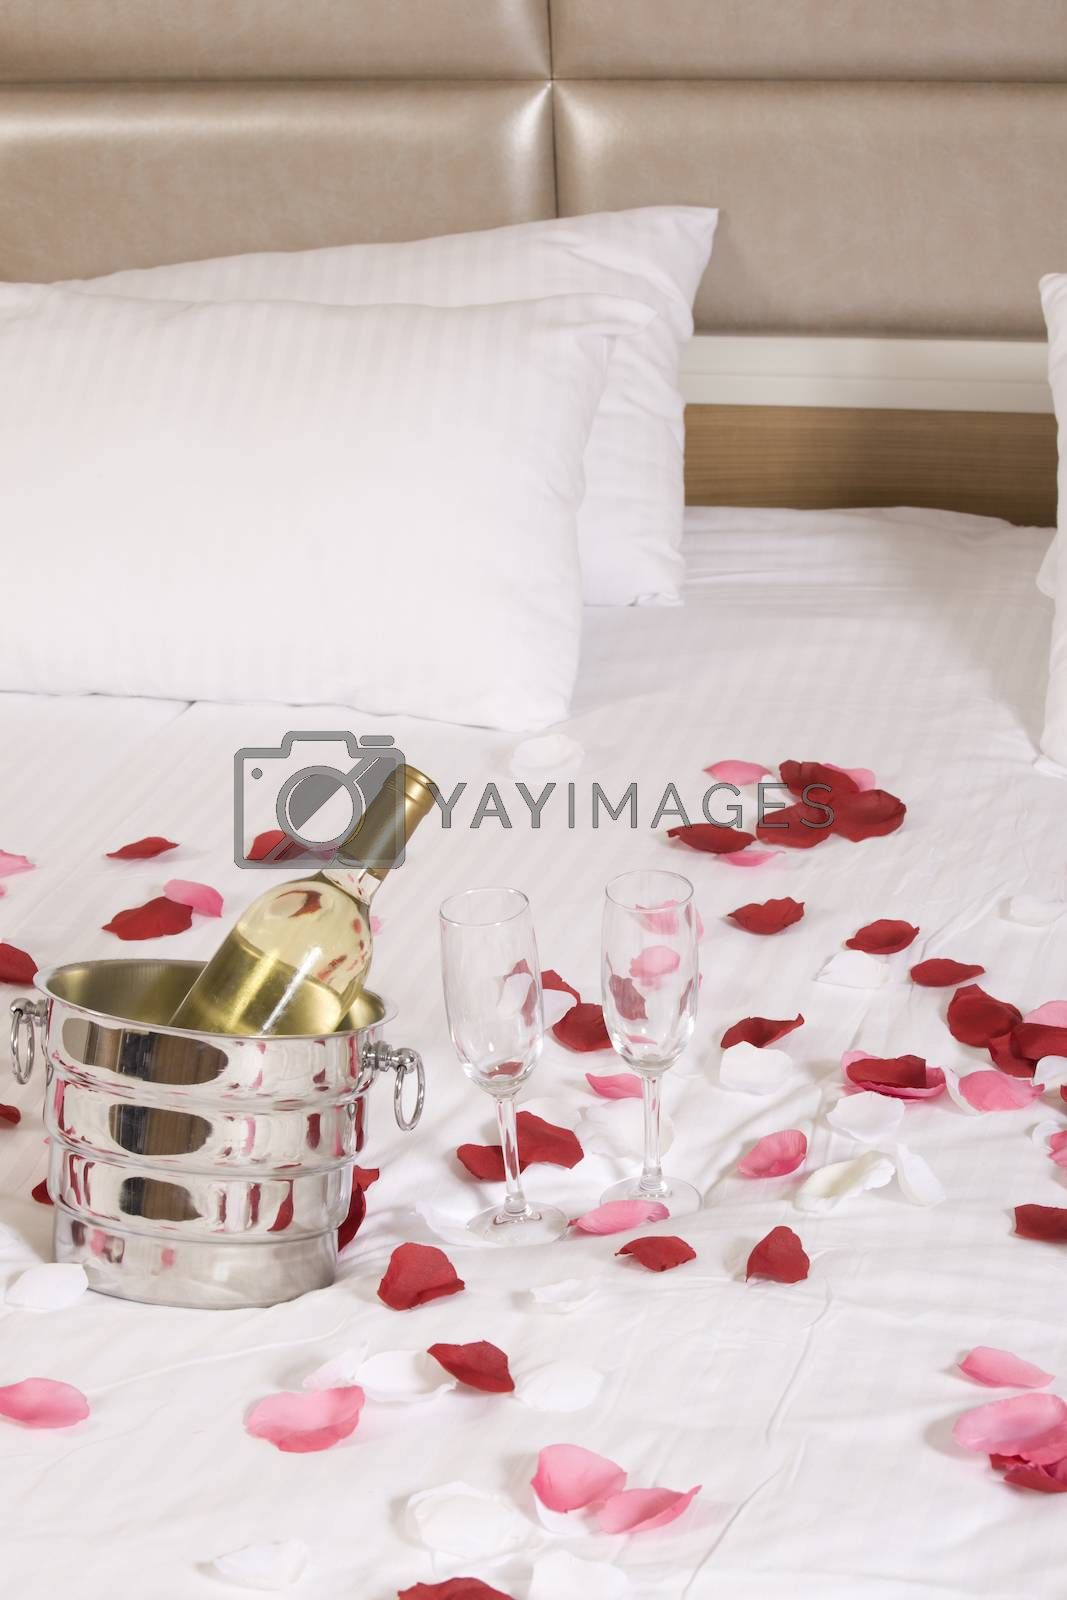 wine in bed to celebrate Valentine's Day at hotel room